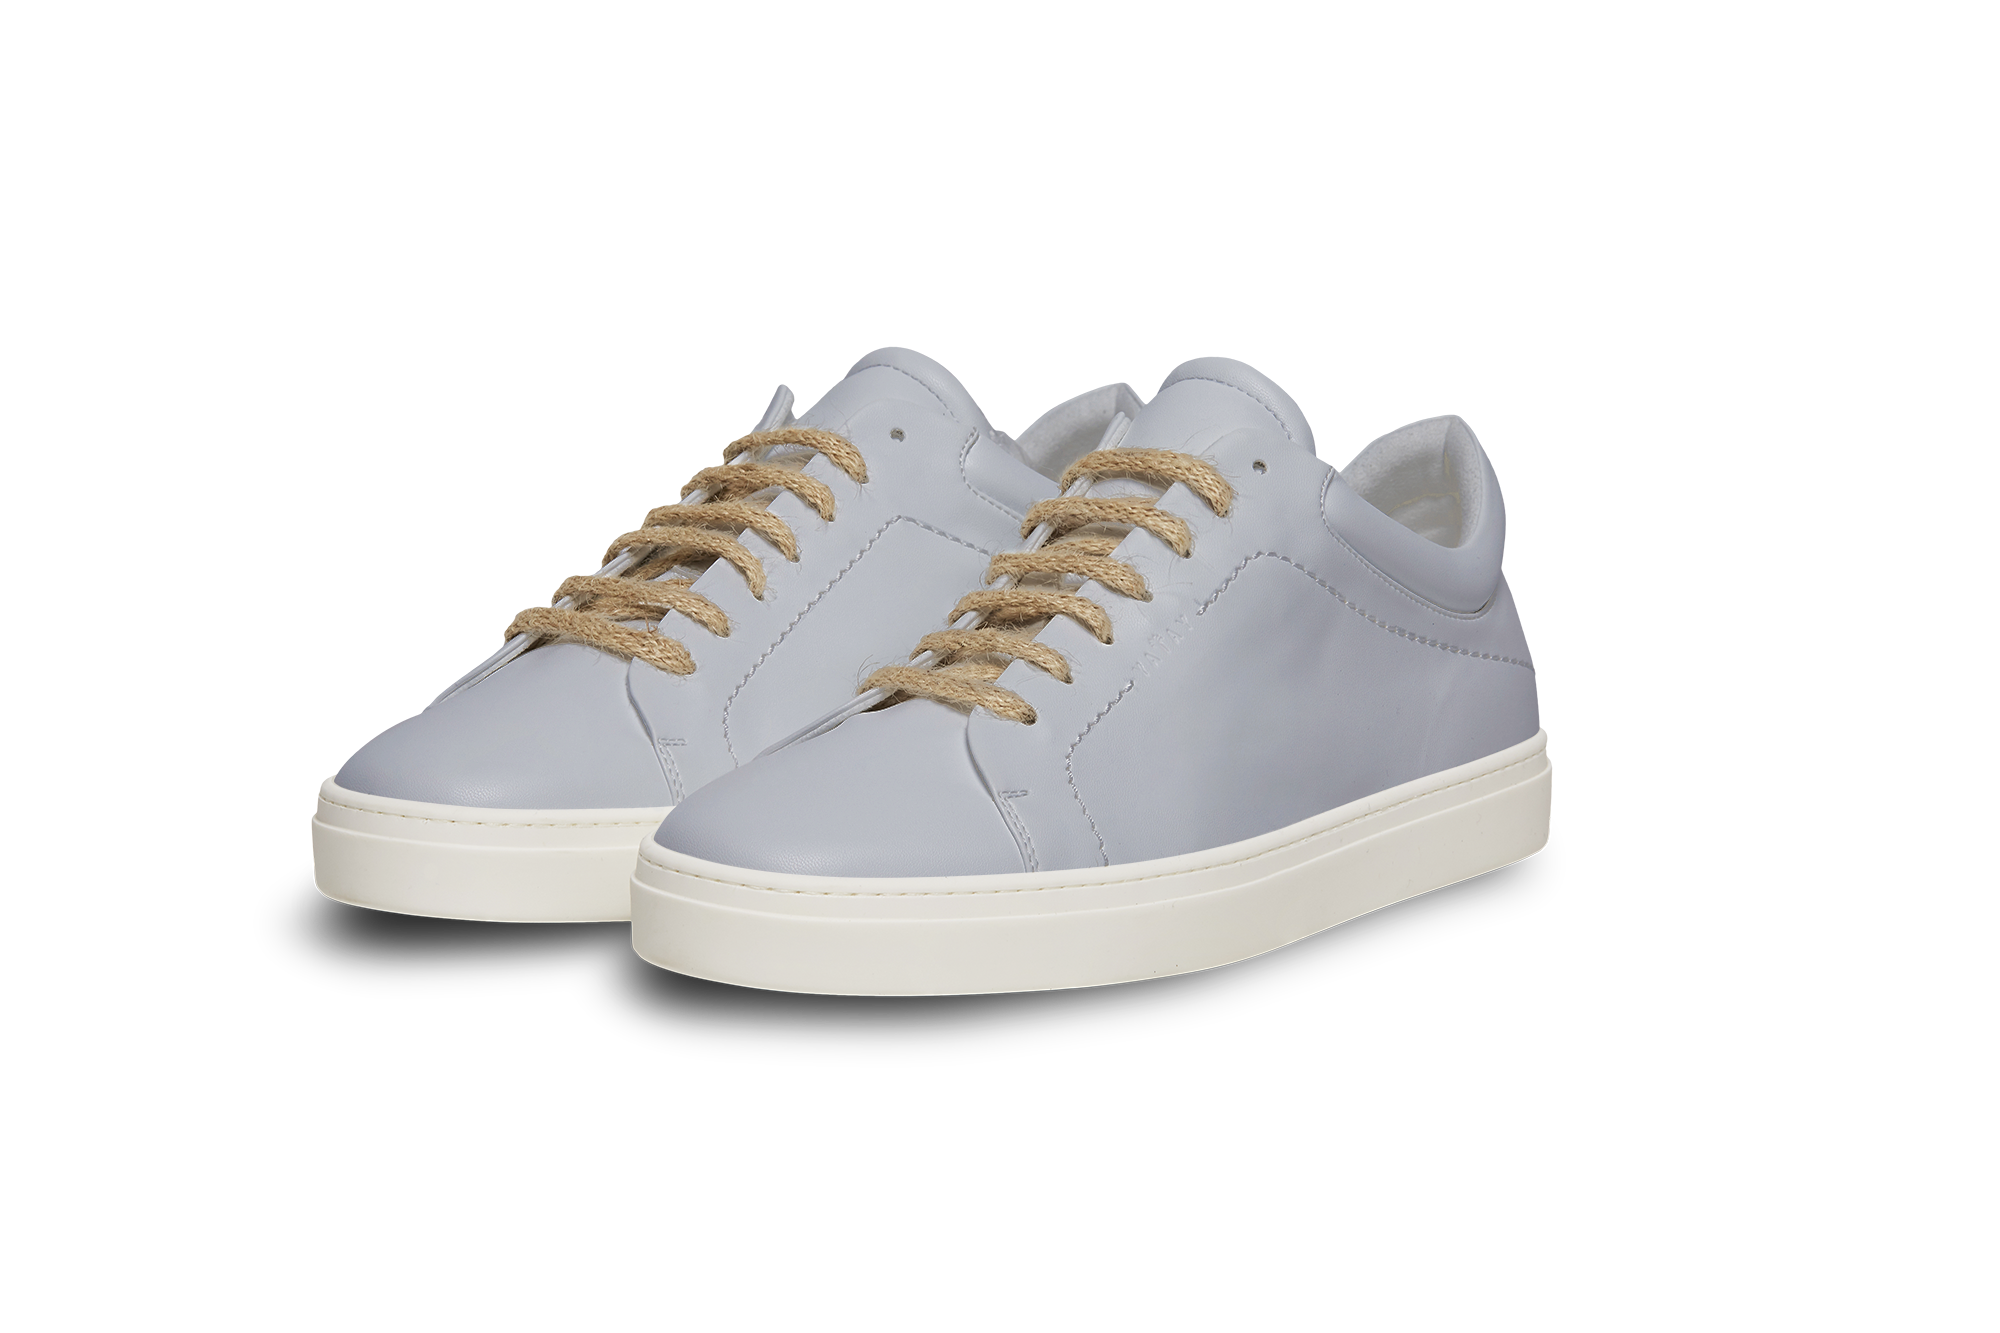 YATAY stylish vegan sneakers for men and women